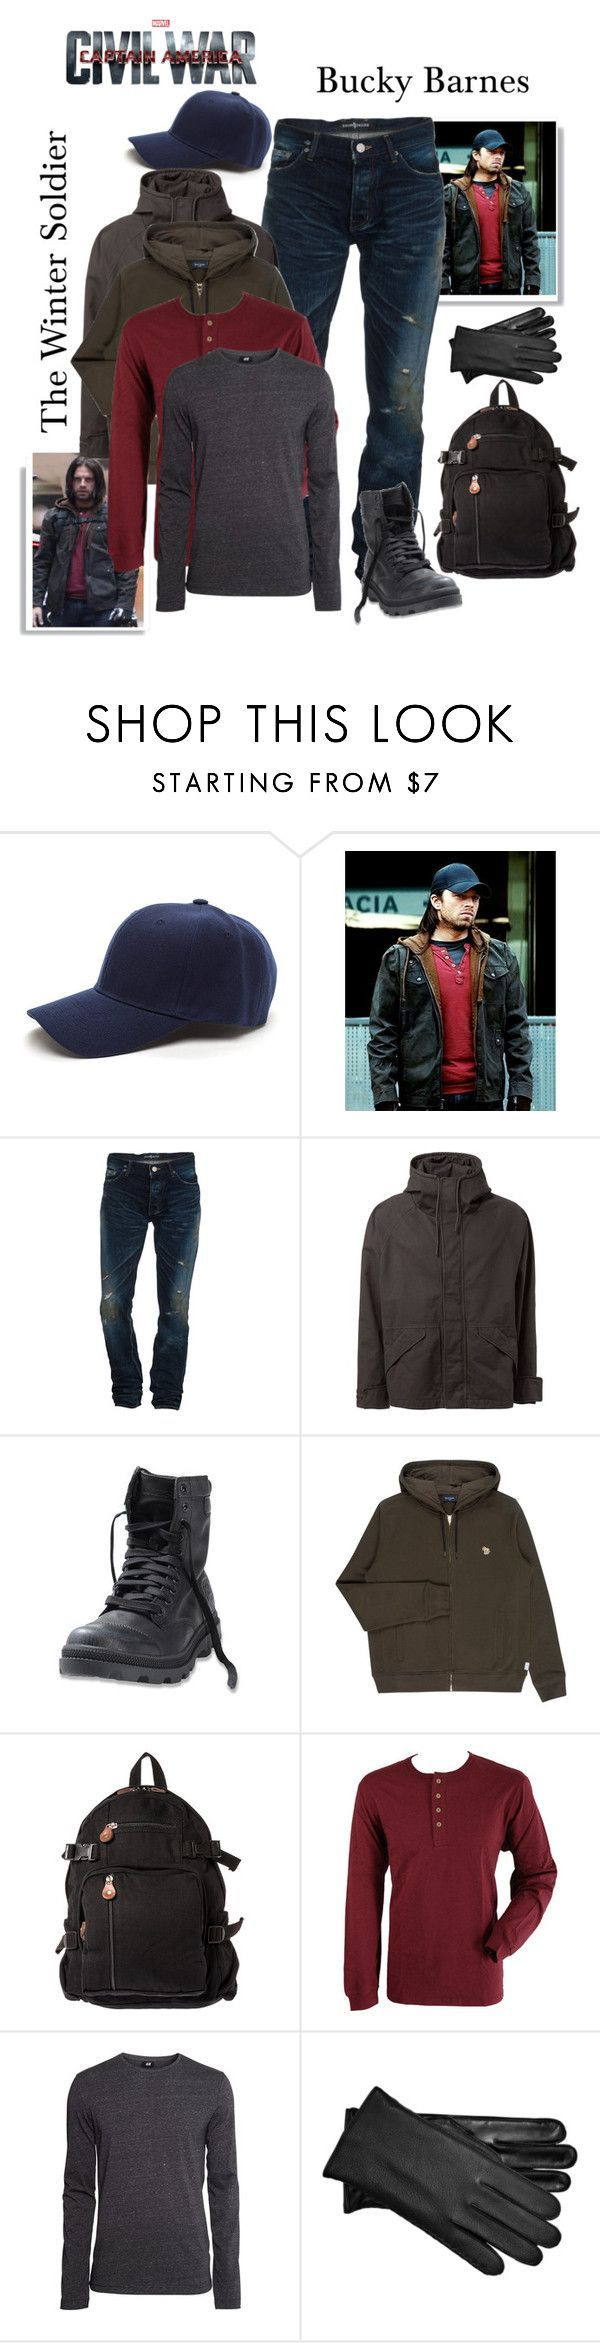 """Bucky Barnes/The Winter Soldier - Captain America: Civil War"" by gone-girl ❤ liked on Polyvore featuring Snake & Dagger, adidas Originals, Diesel, Paul Smith, Rothco, Pendleton, H&M, UGG Australia, men's fashion and menswear"